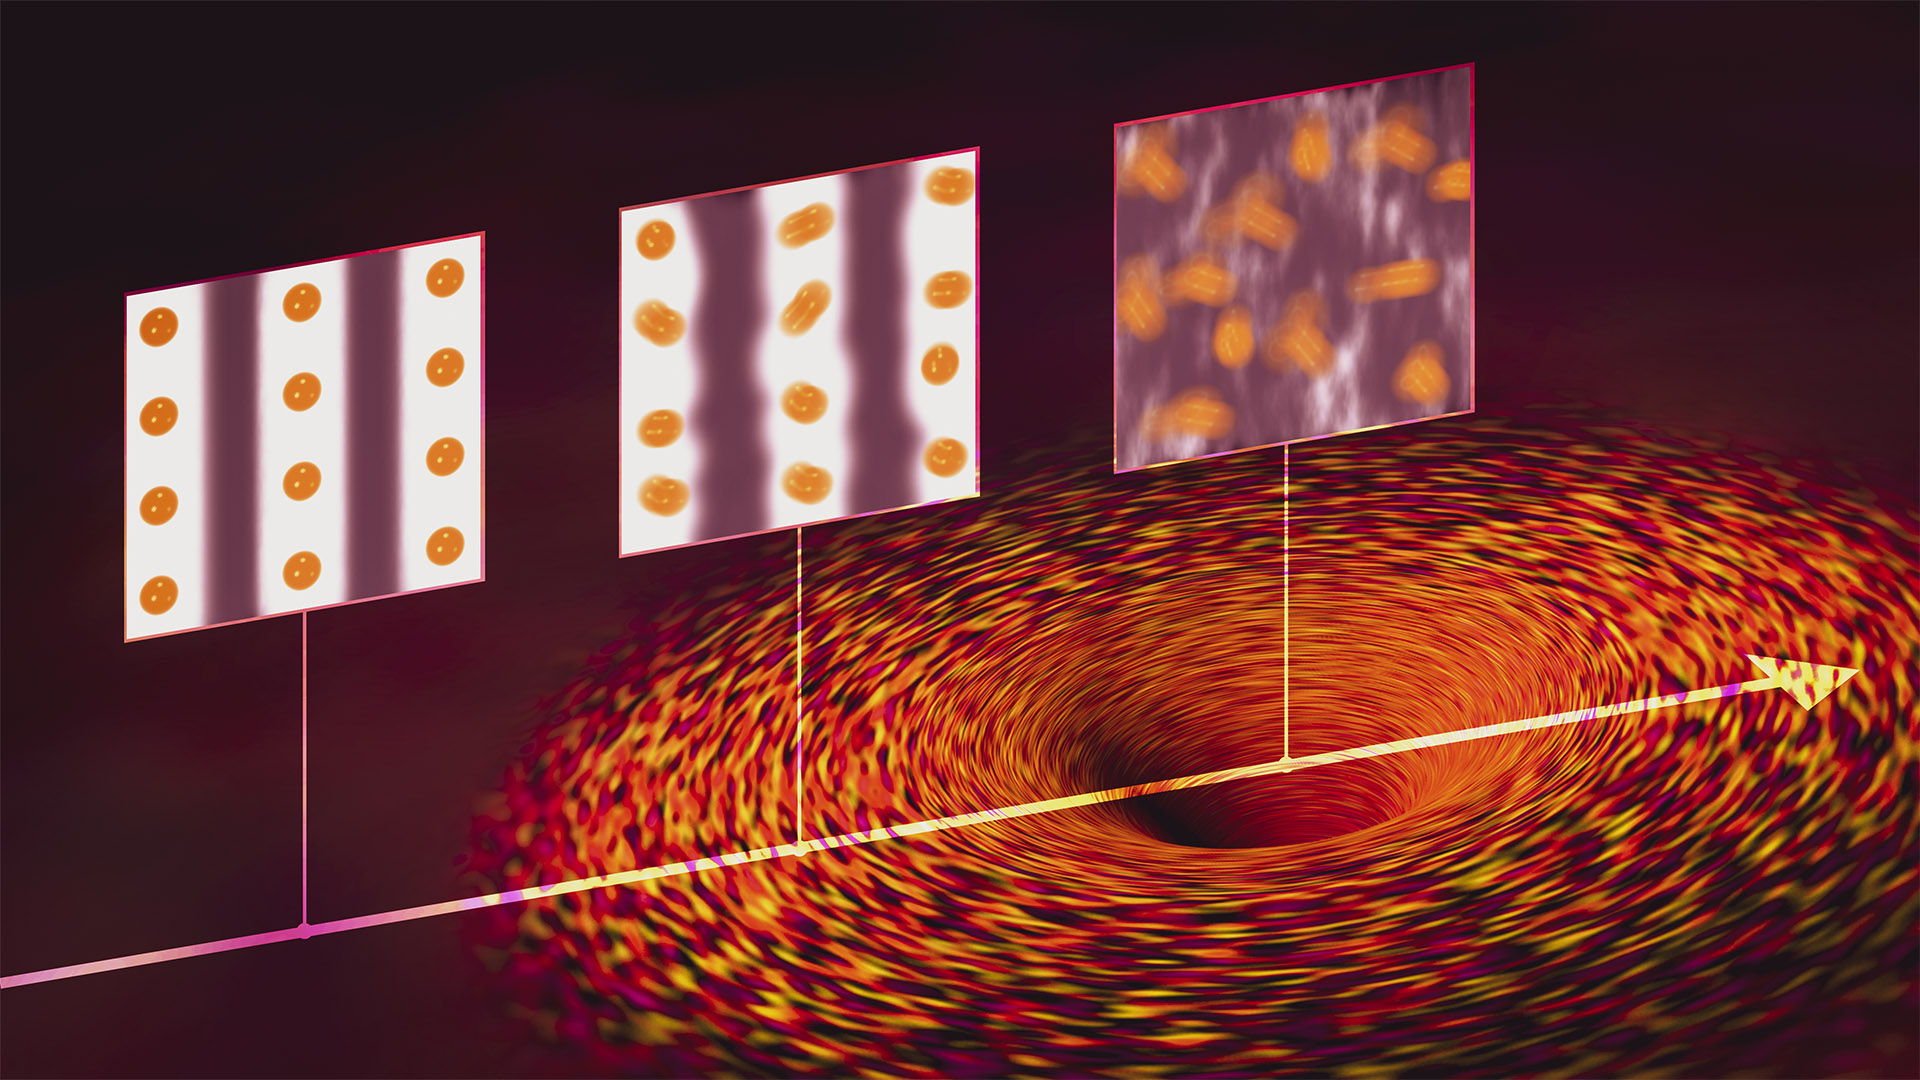 Much like black holes (bottom right) are singularities in space, quantum critical points (QCPs) are point-like intersections between different states of a quantum material where all sorts of strange electron behavior are predicted to occur. A SLAC study found strong evidence for one such behavior: As a cuprate superconductor was tuned toward a QCP in the superconducting state at low temperatures, a proliferation of quantum fluctuations gradually melted charge stripes (from top left) – alternating stripes of stronger and weaker electron density – in the material. (Greg Stewart/SLAC National Accelerator Laboratory)